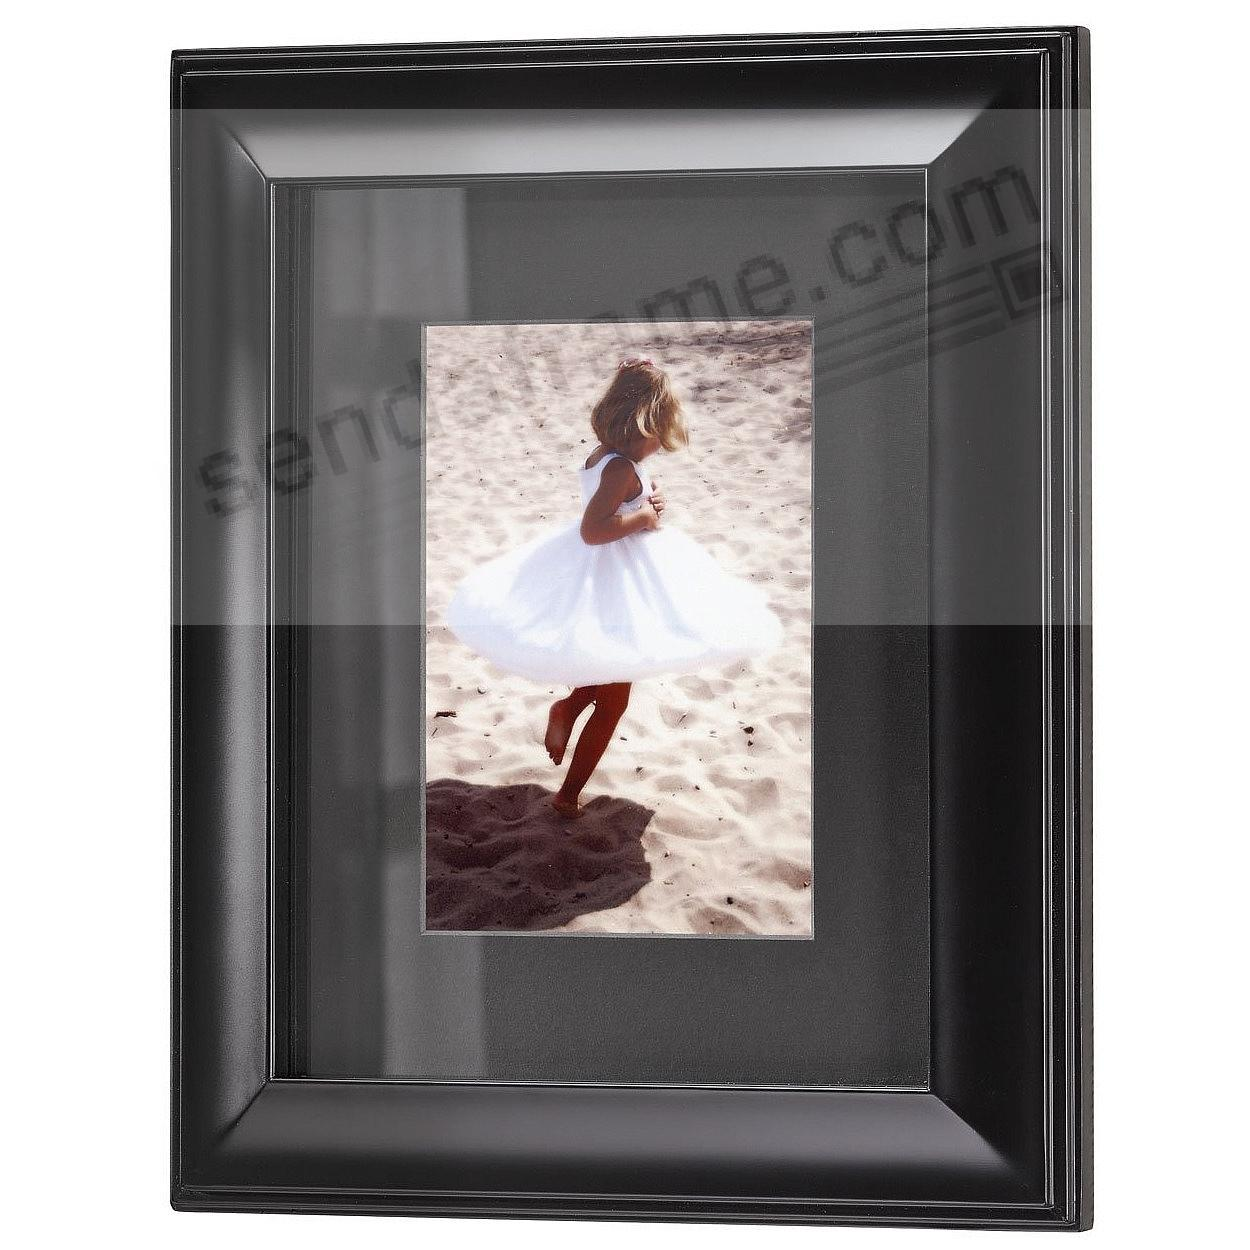 Hudson Black Matted Ebony Black Wood Frame 8x105x7 From Artcare By